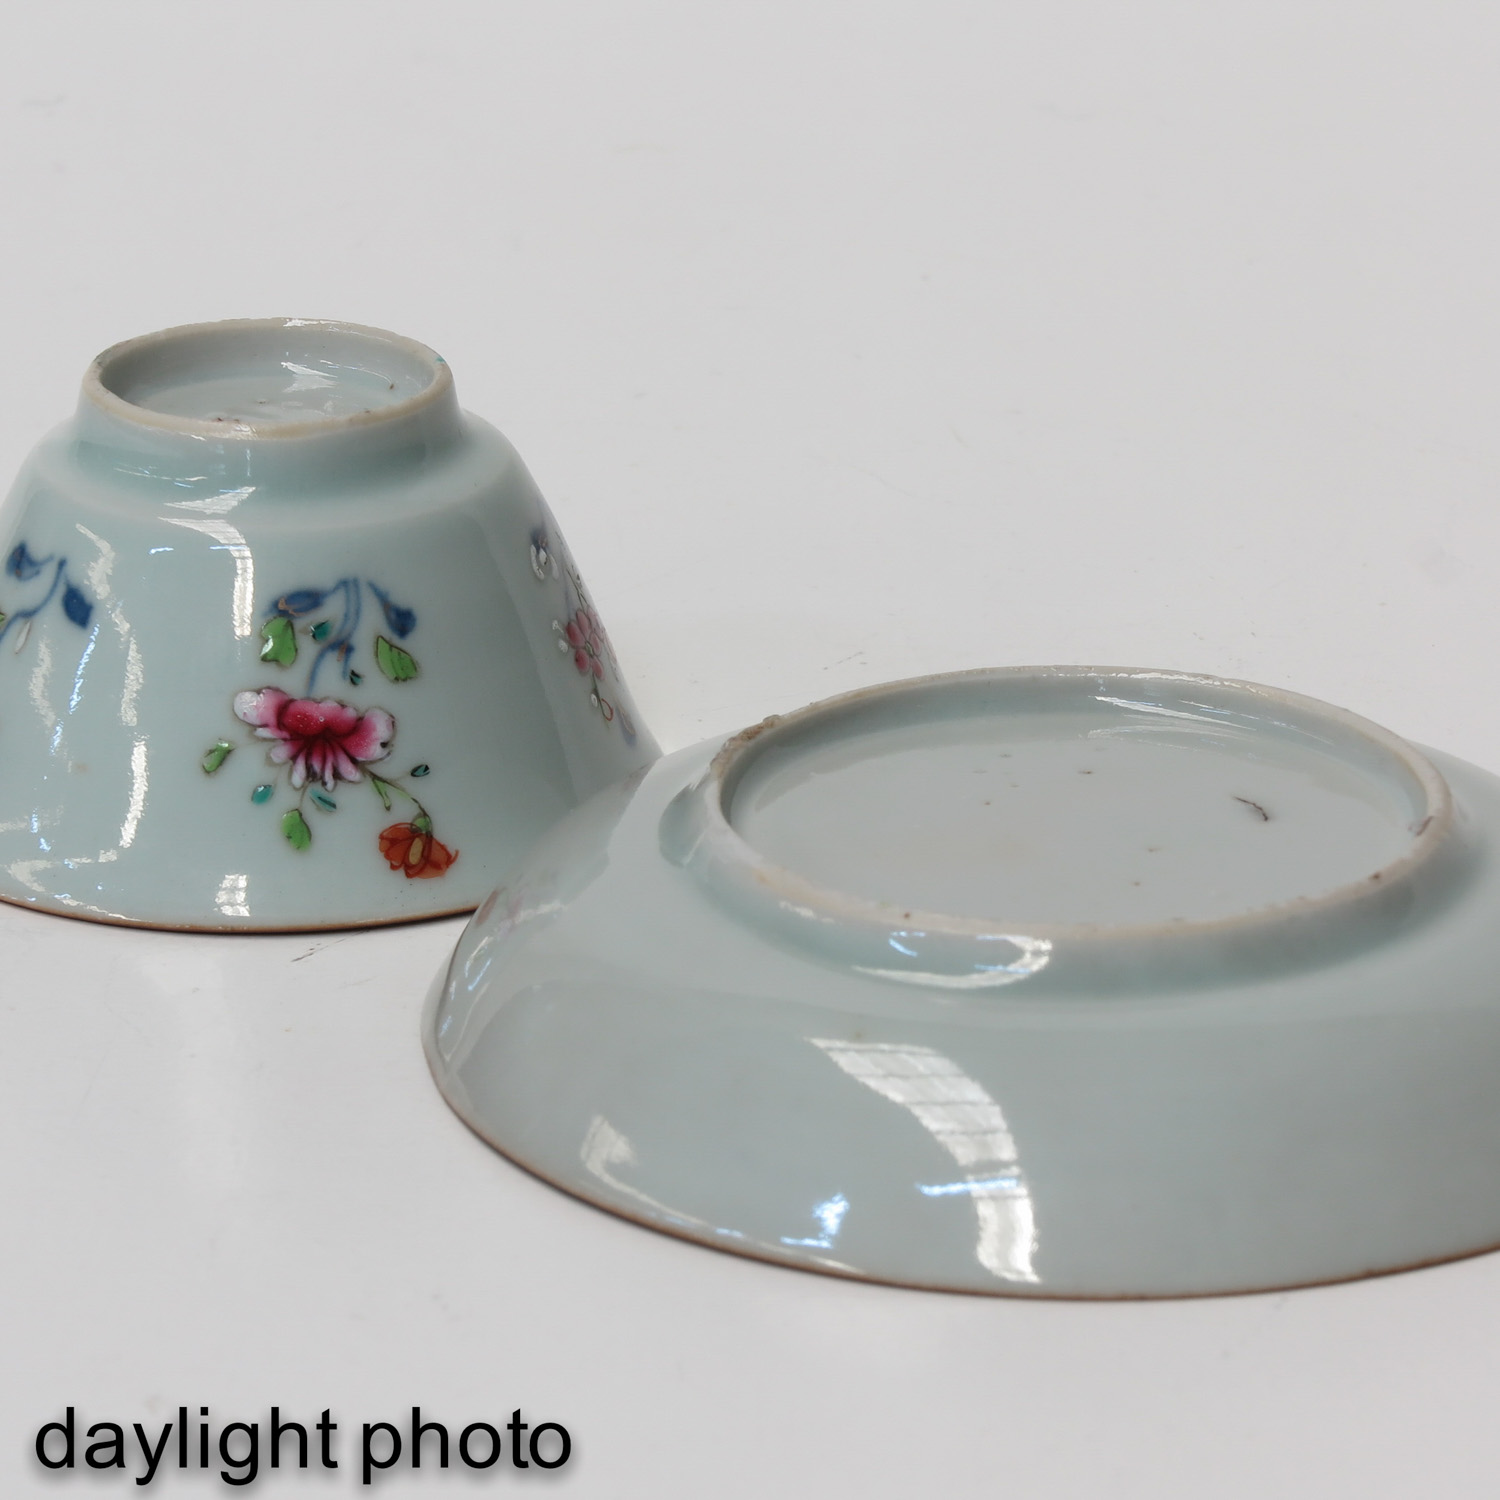 A Set of 6 Cups and Saucers - Image 10 of 10